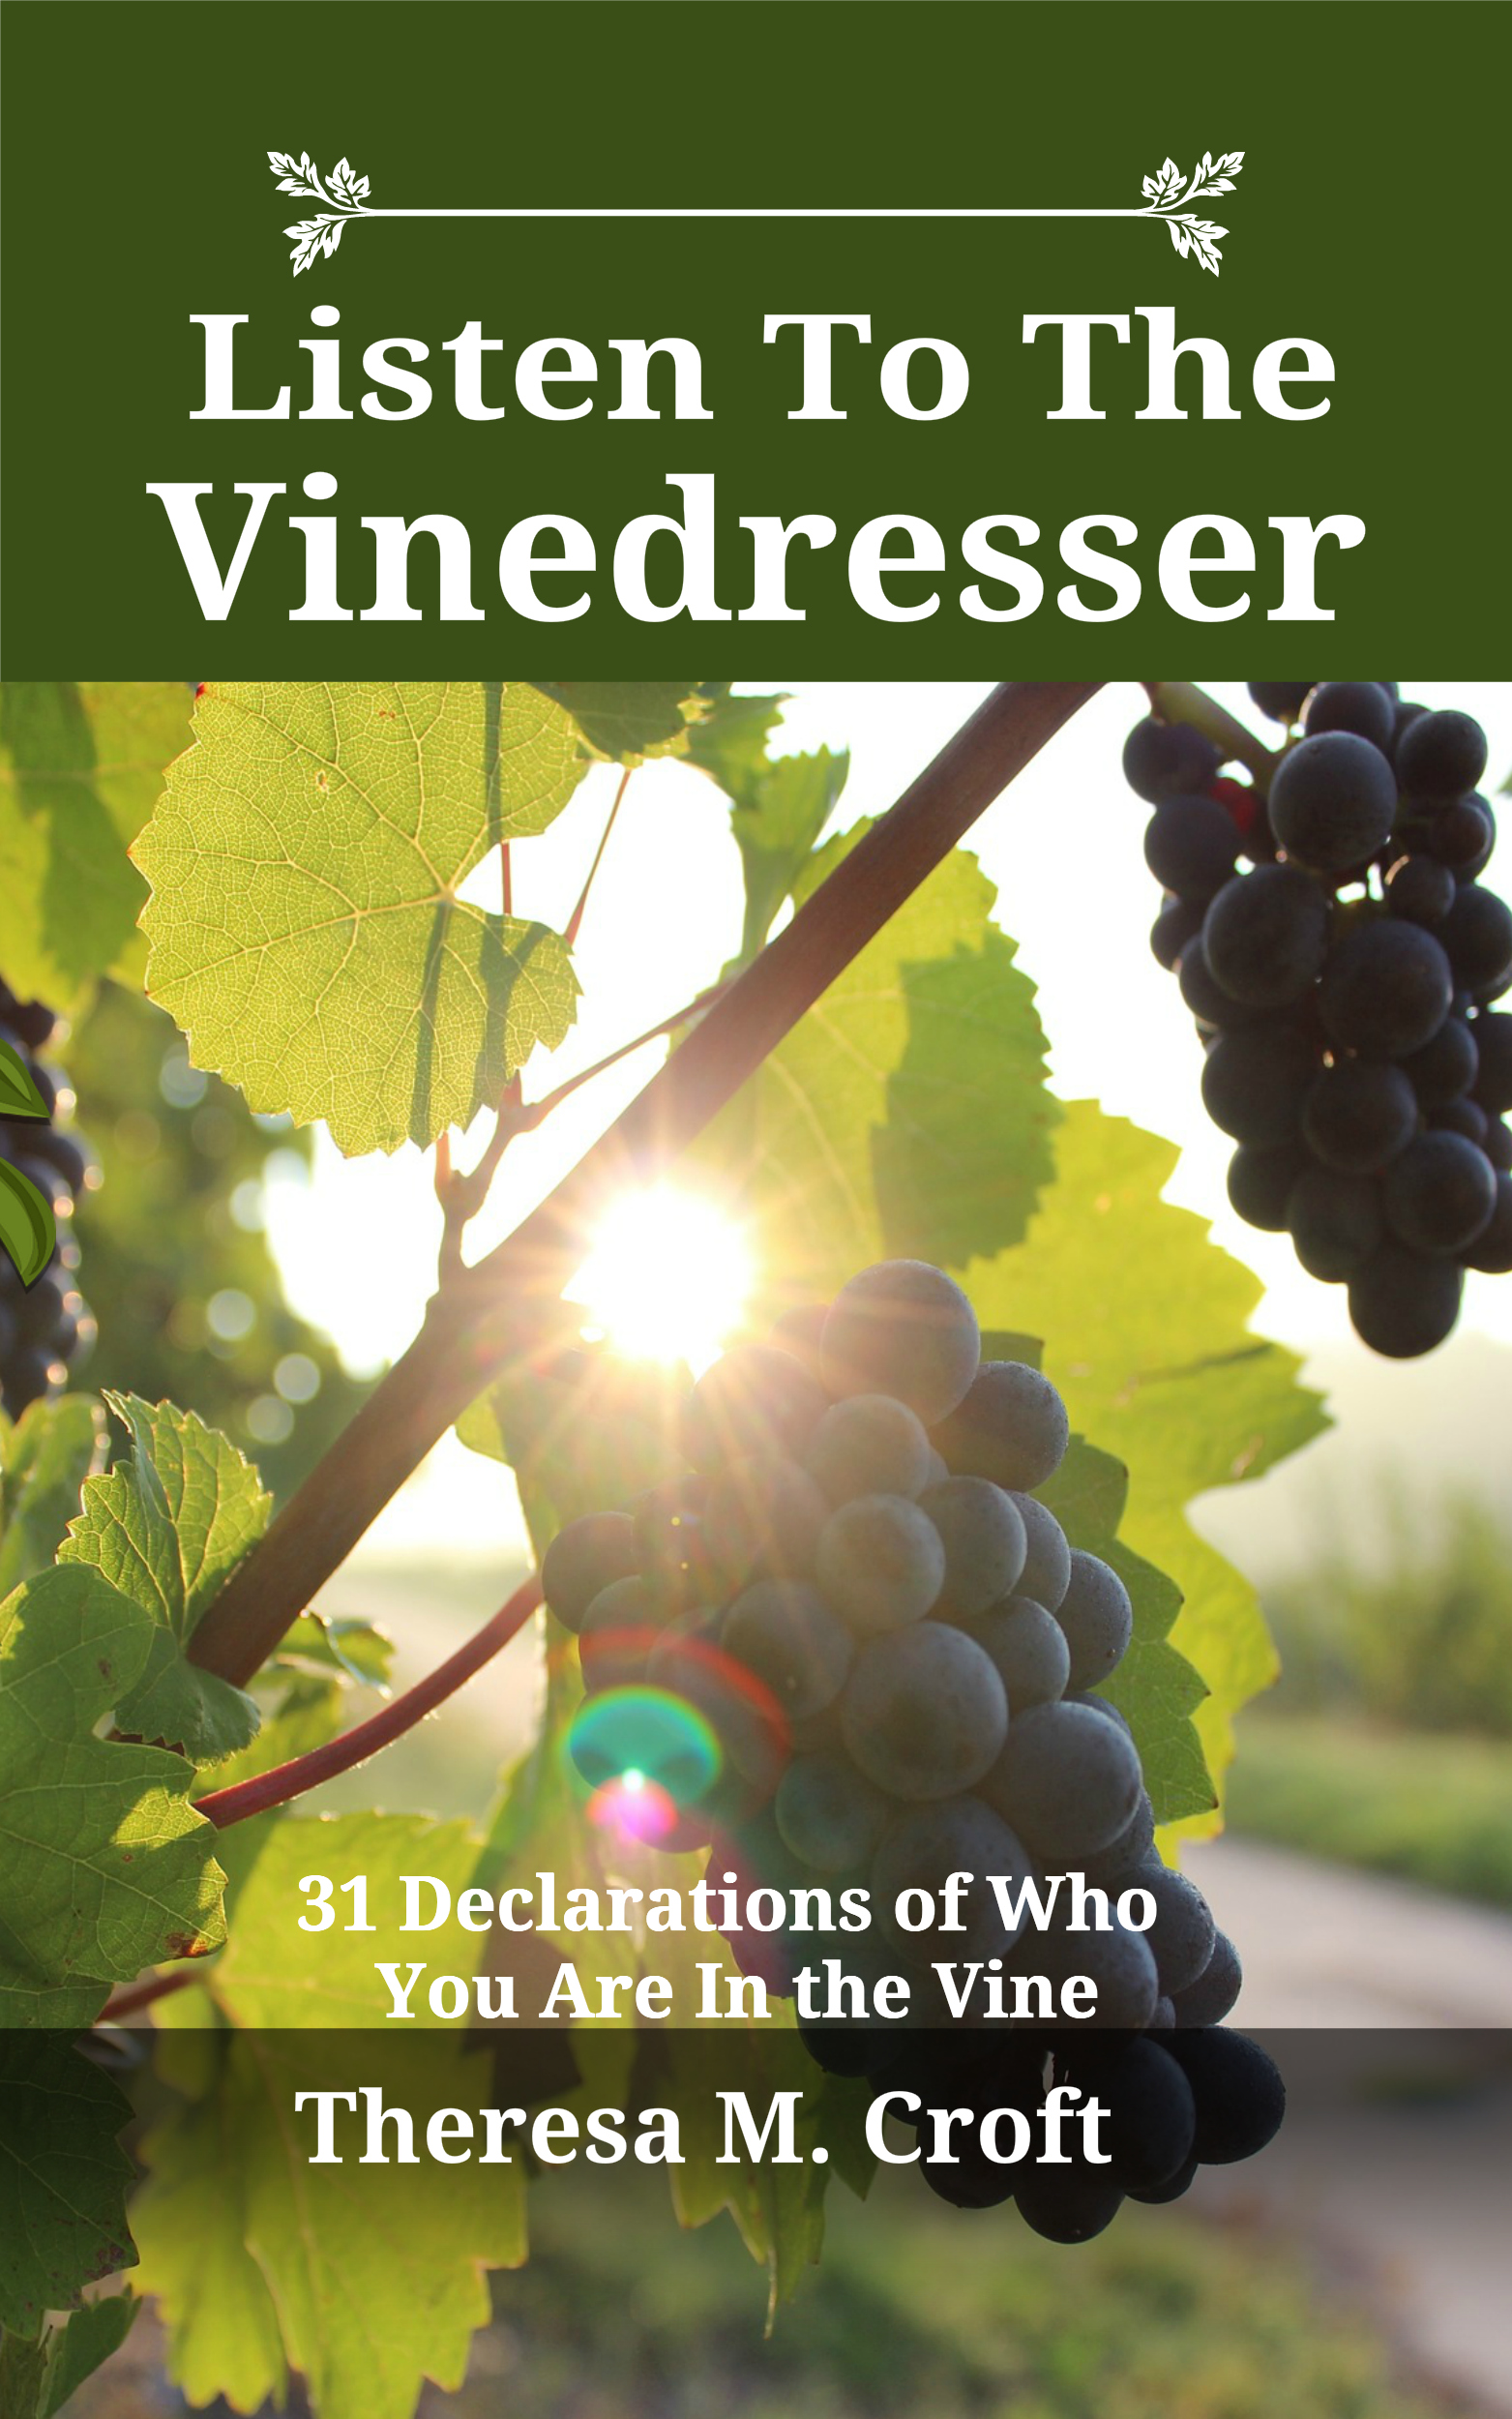 Listen To The Vinedresser